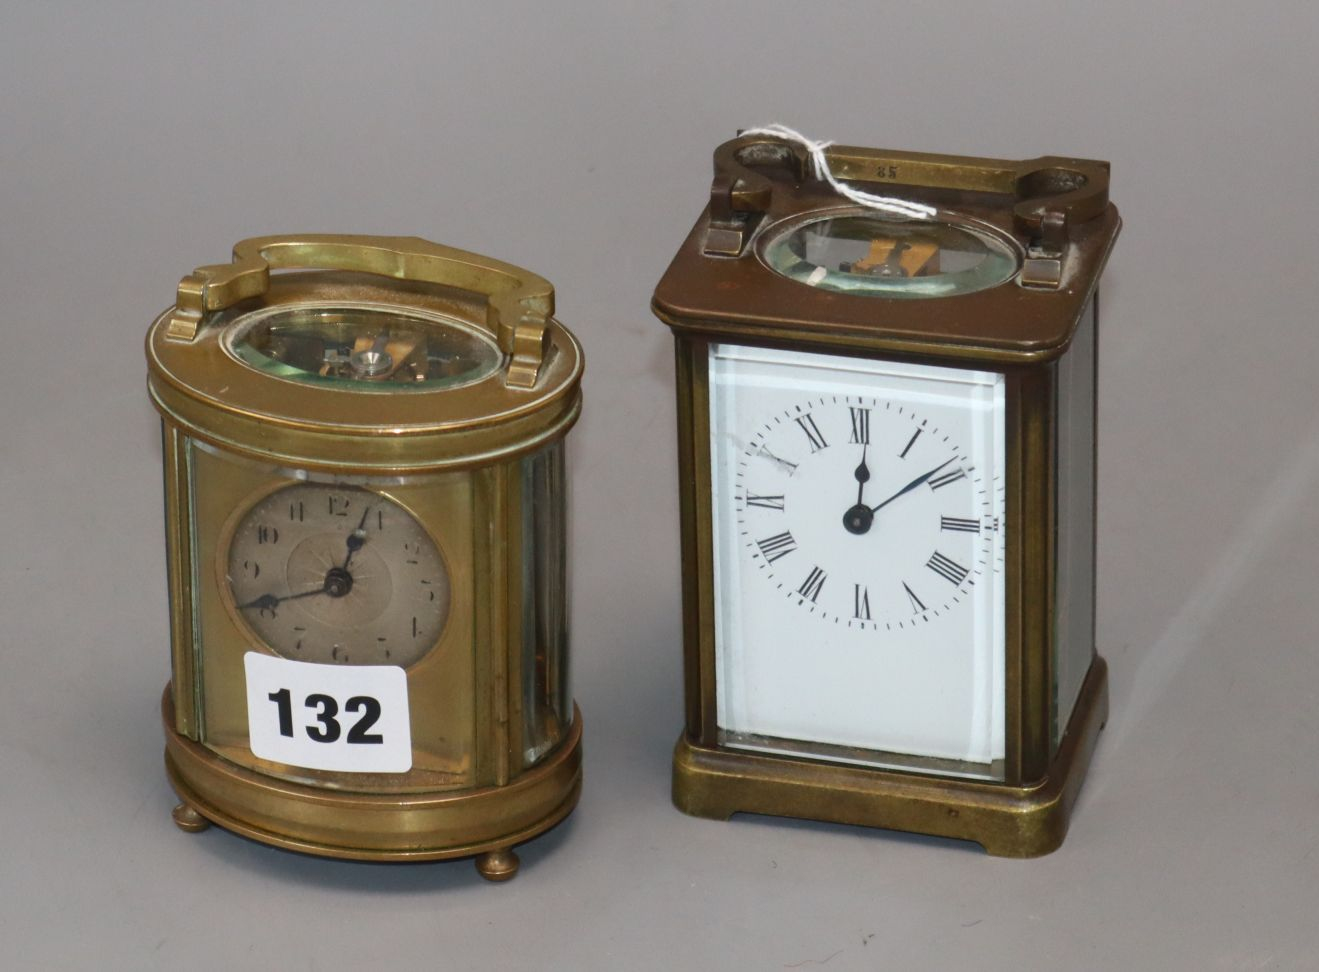 Lot 132 - An oval brass carriage timepiece and one other